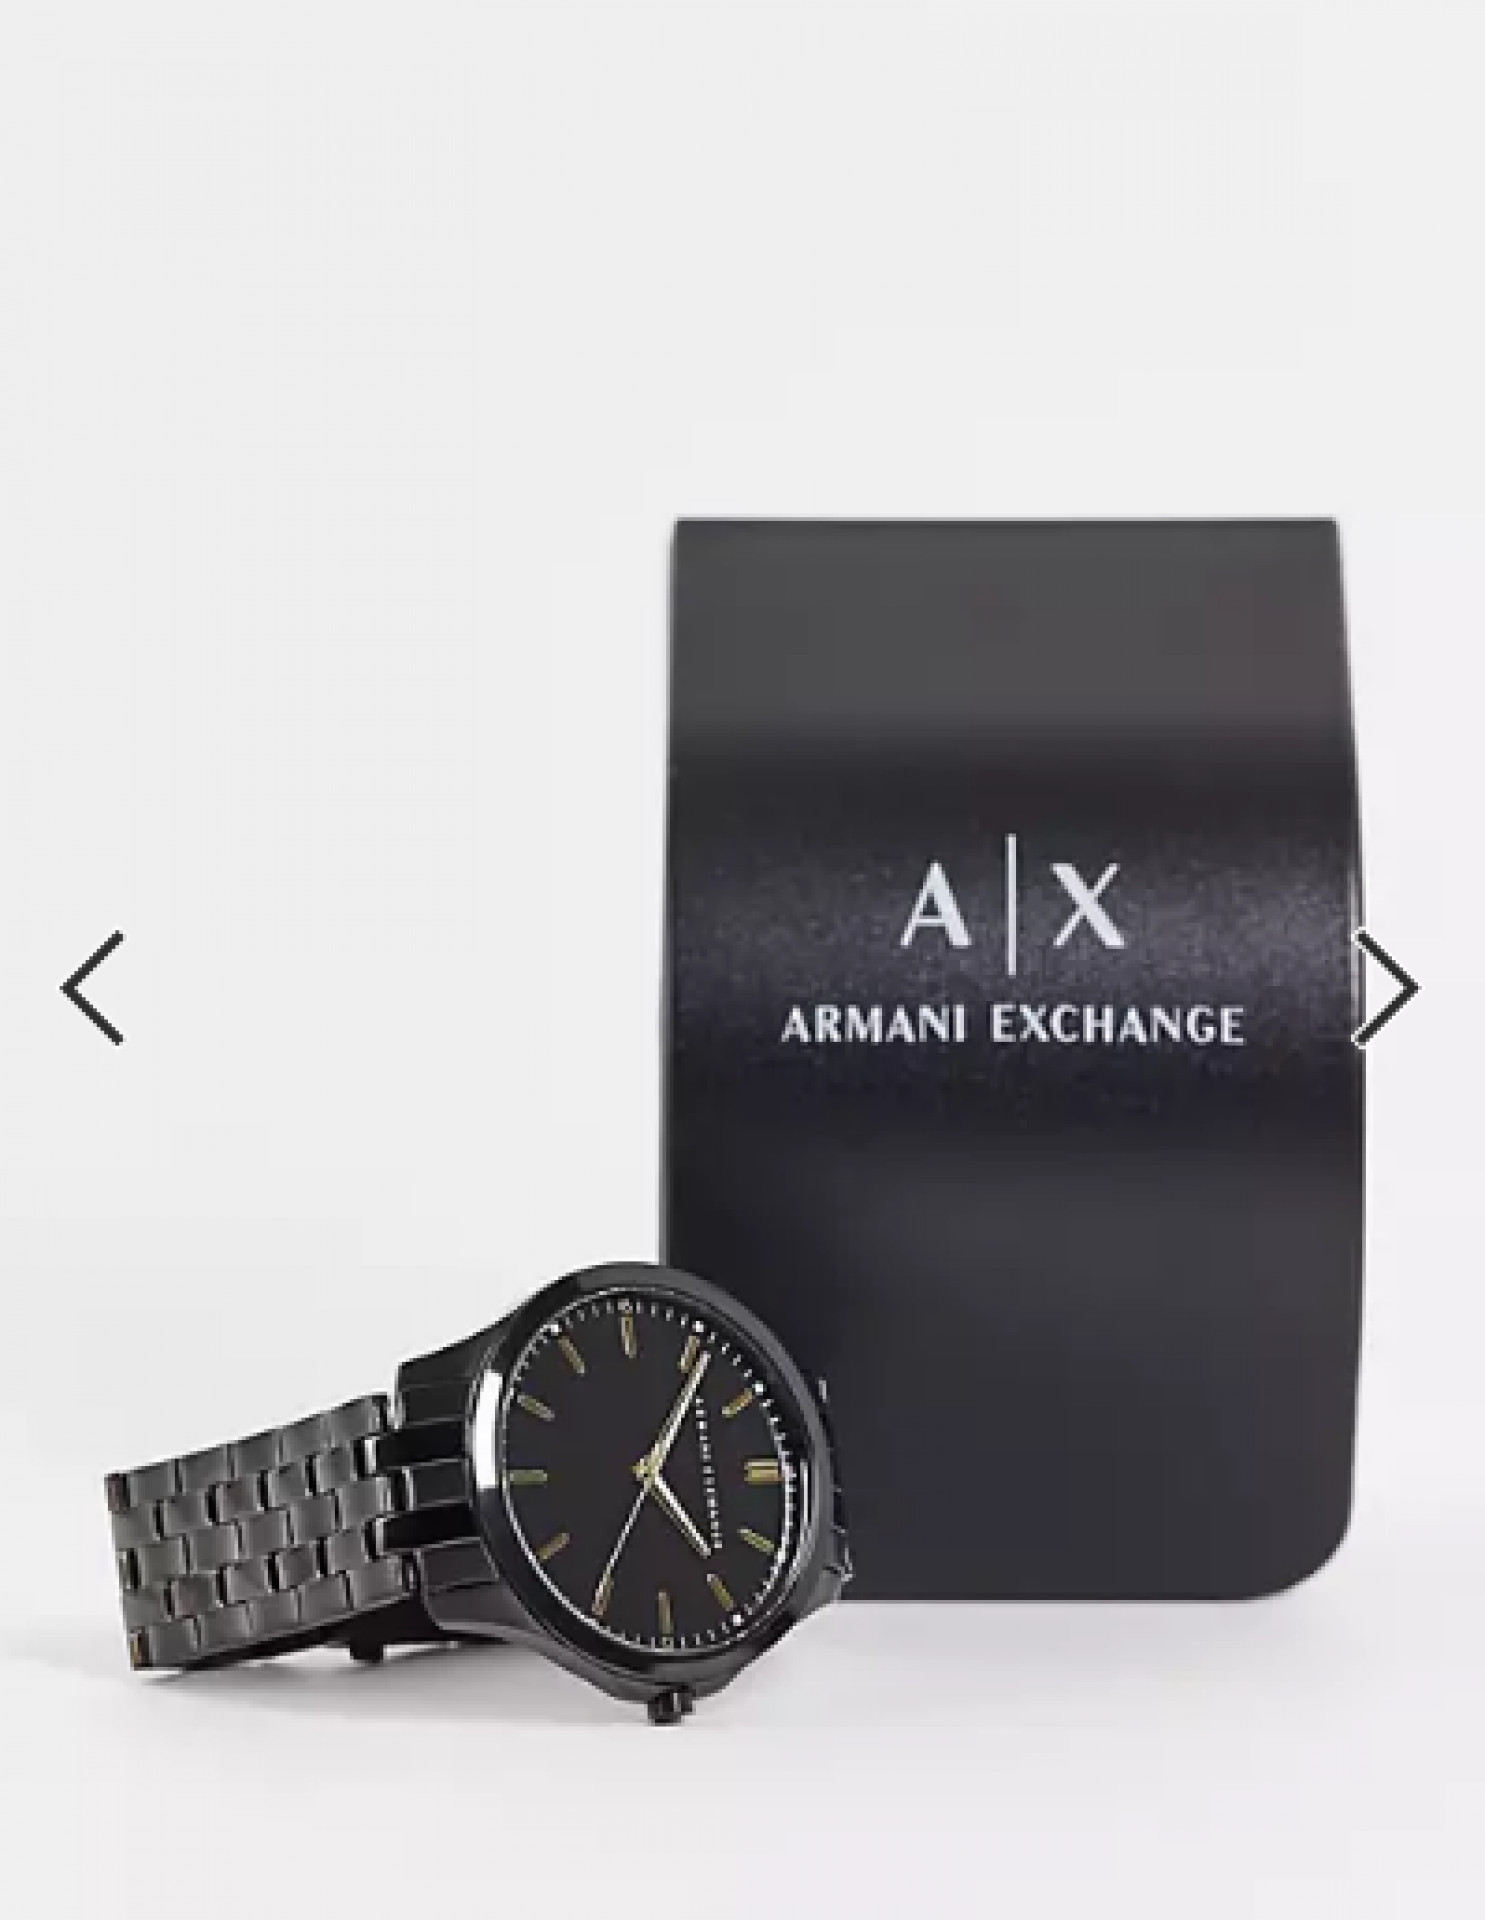 Armani Exchange AX2144 stainless steel watch in black